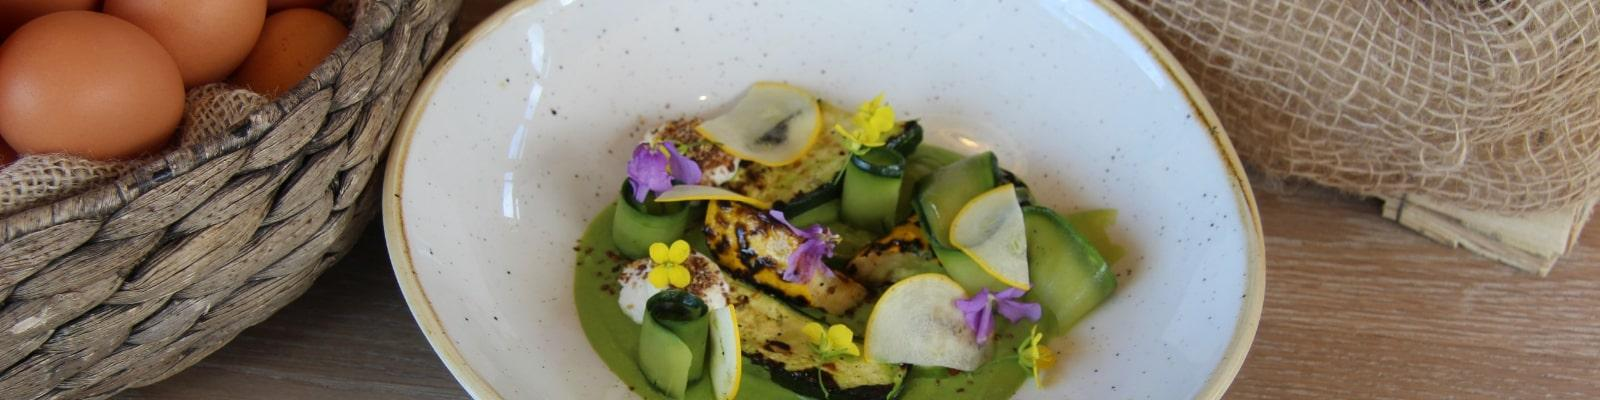 https://www.airfield.ie/wp-content/uploads/2019/02/Fresh-Courgette-Dish-Overends-kitchen-min.jpg